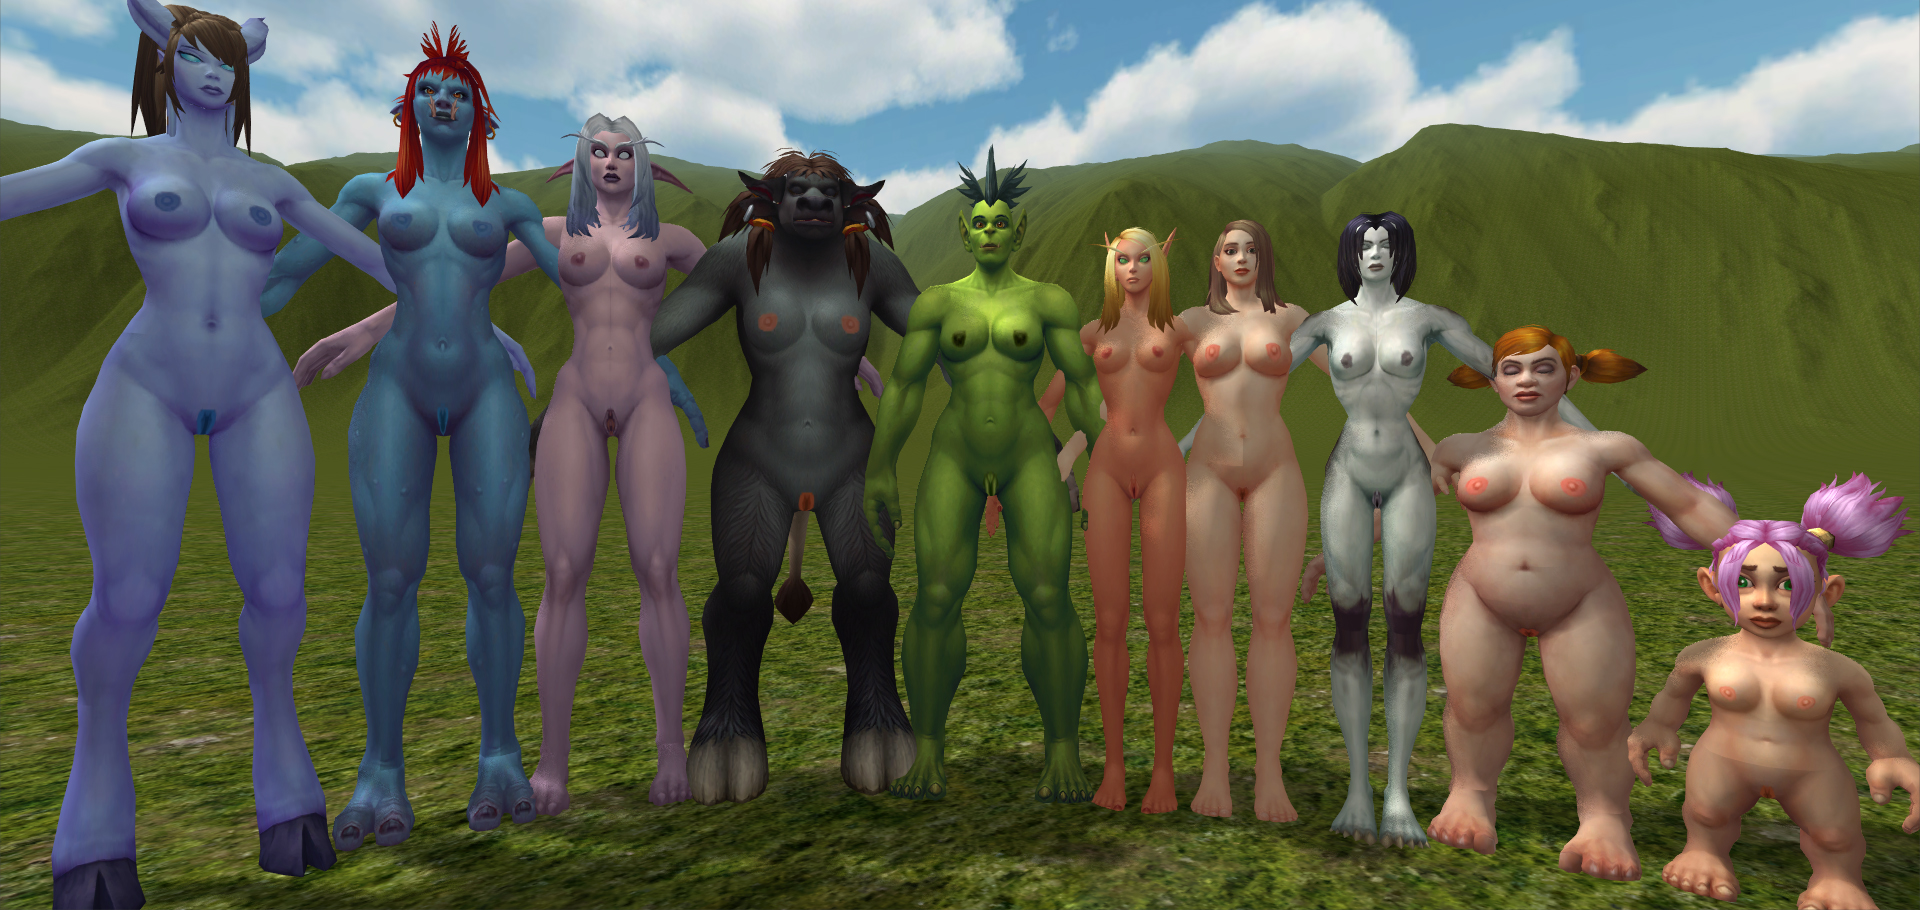 World of warcraft nude mod skins fucking pic